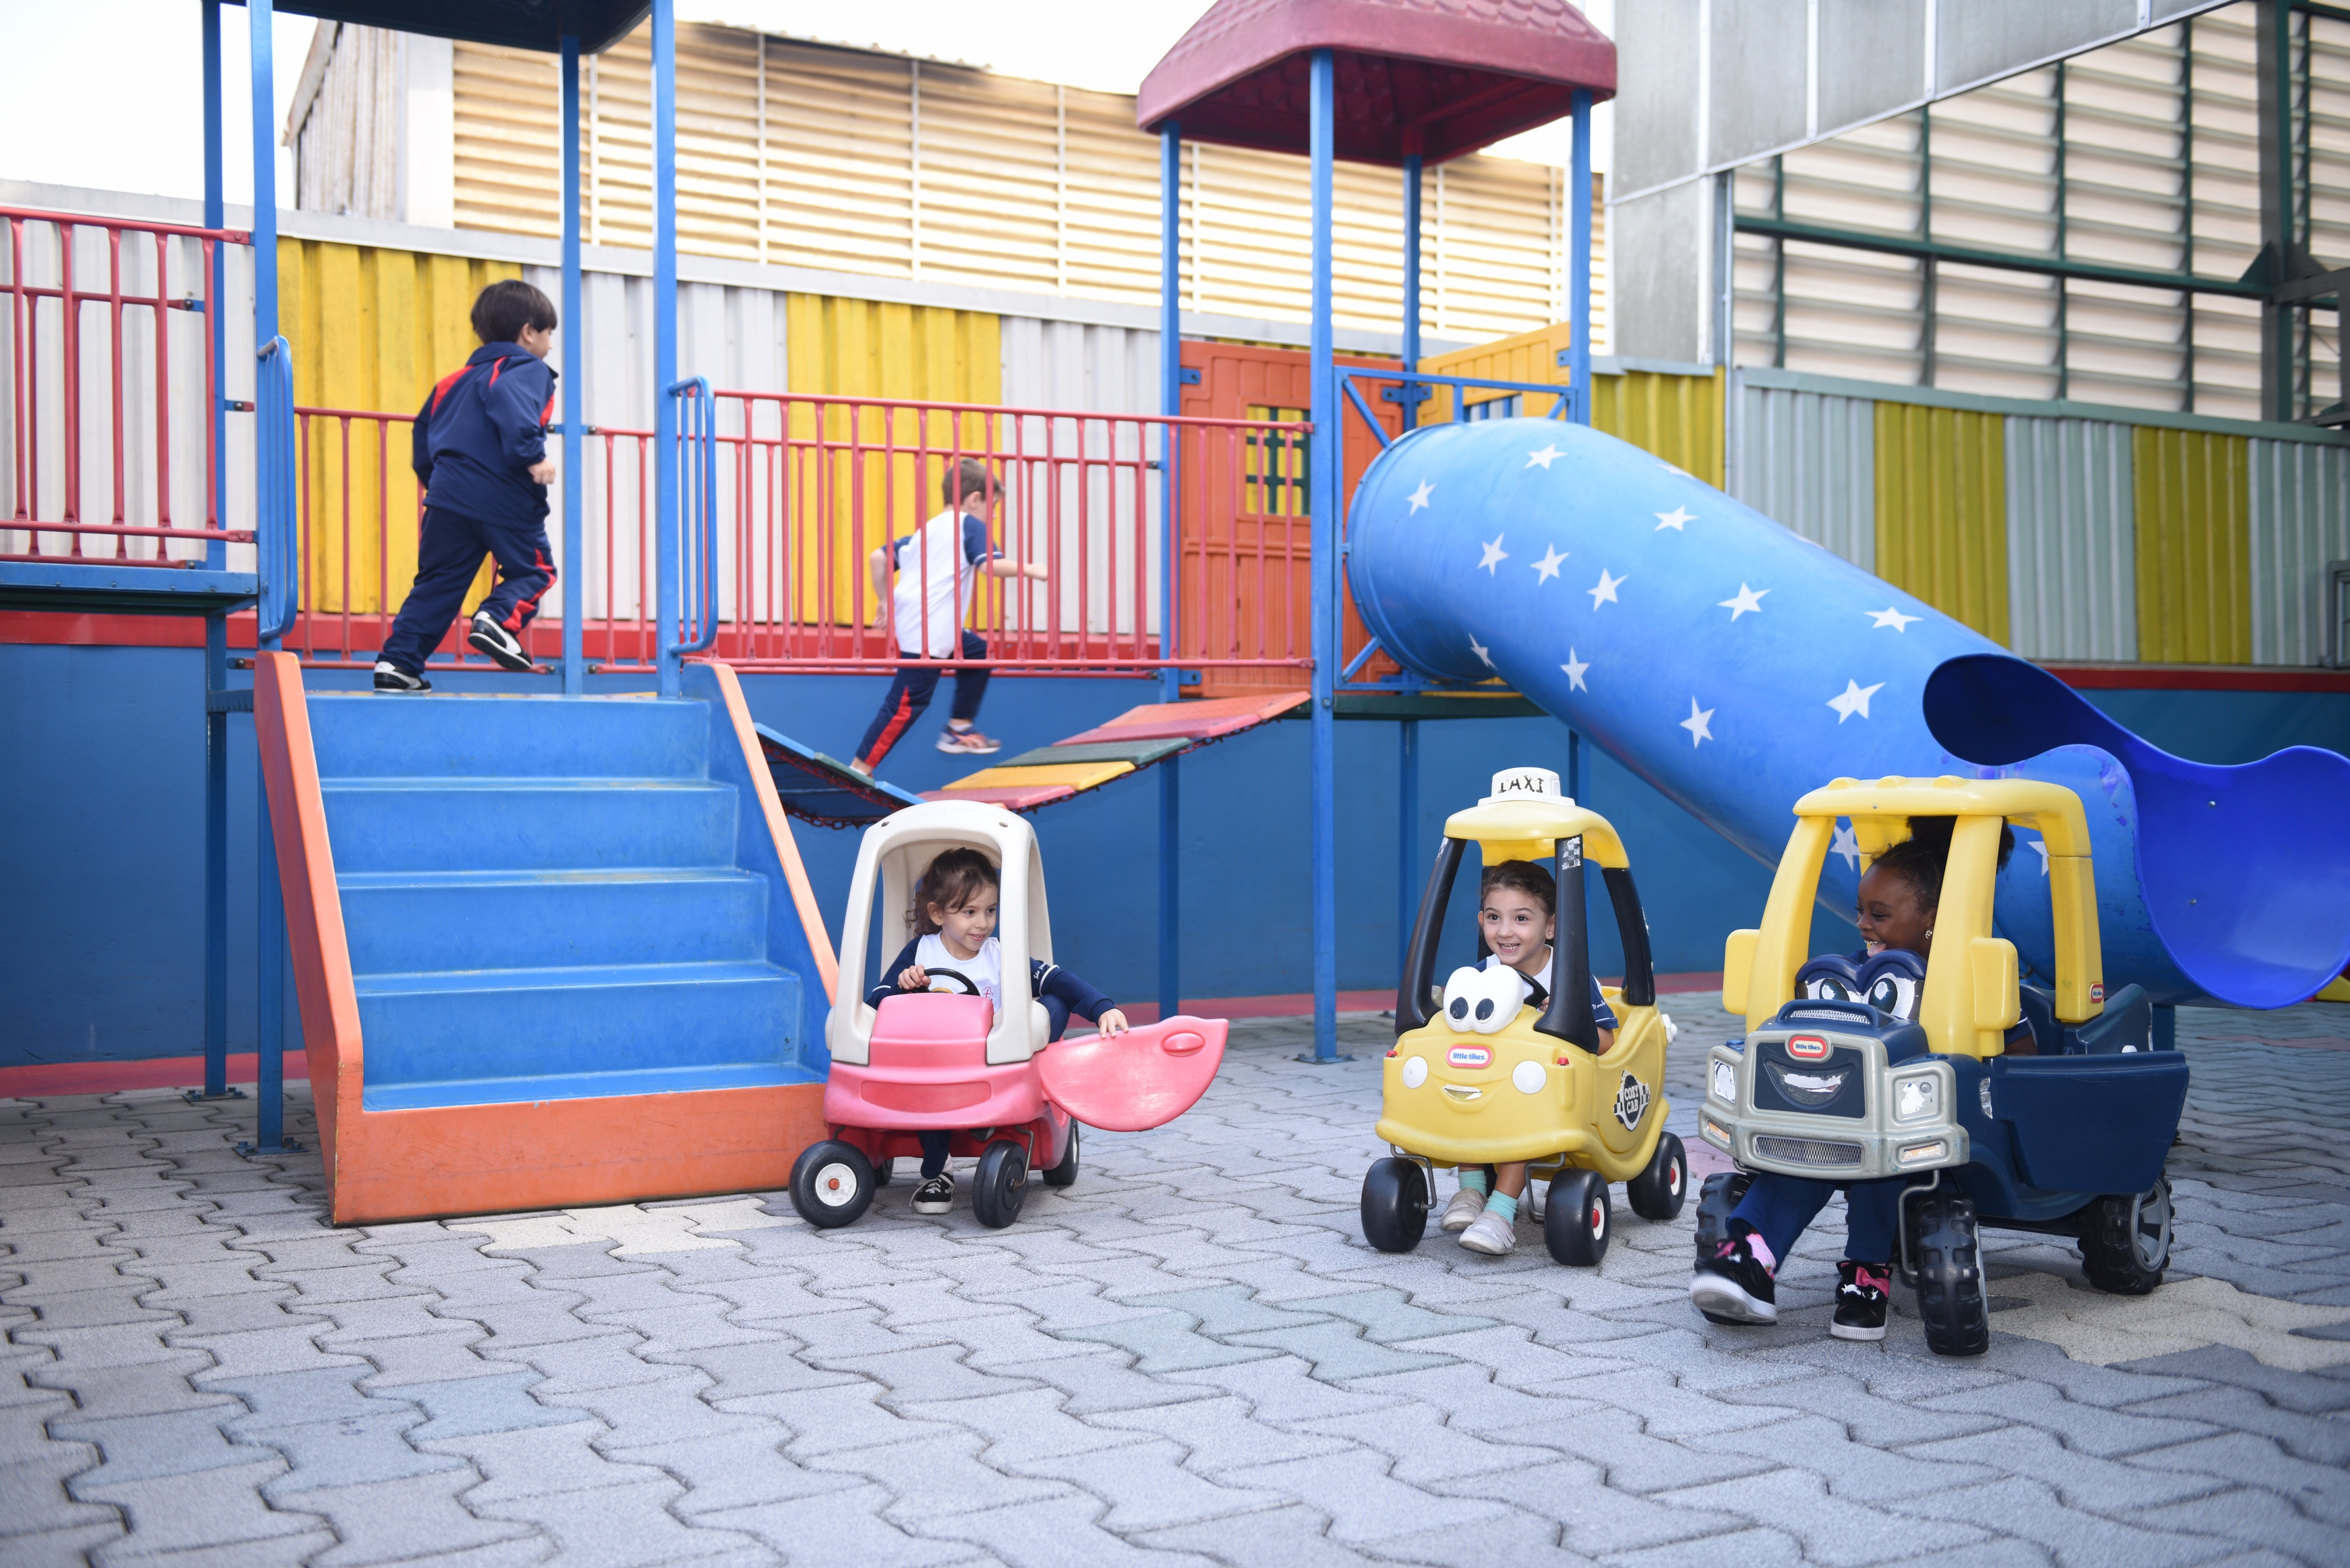 Parque Infantil <a href='/img/galeria/8FCEA21810F3A3B8D07E.JPG' target='blank'><b style='color:white'>Baixar Foto</b> <img src='img/down-arrow-white.png' style='margin-top:-4px' border='0'></a>